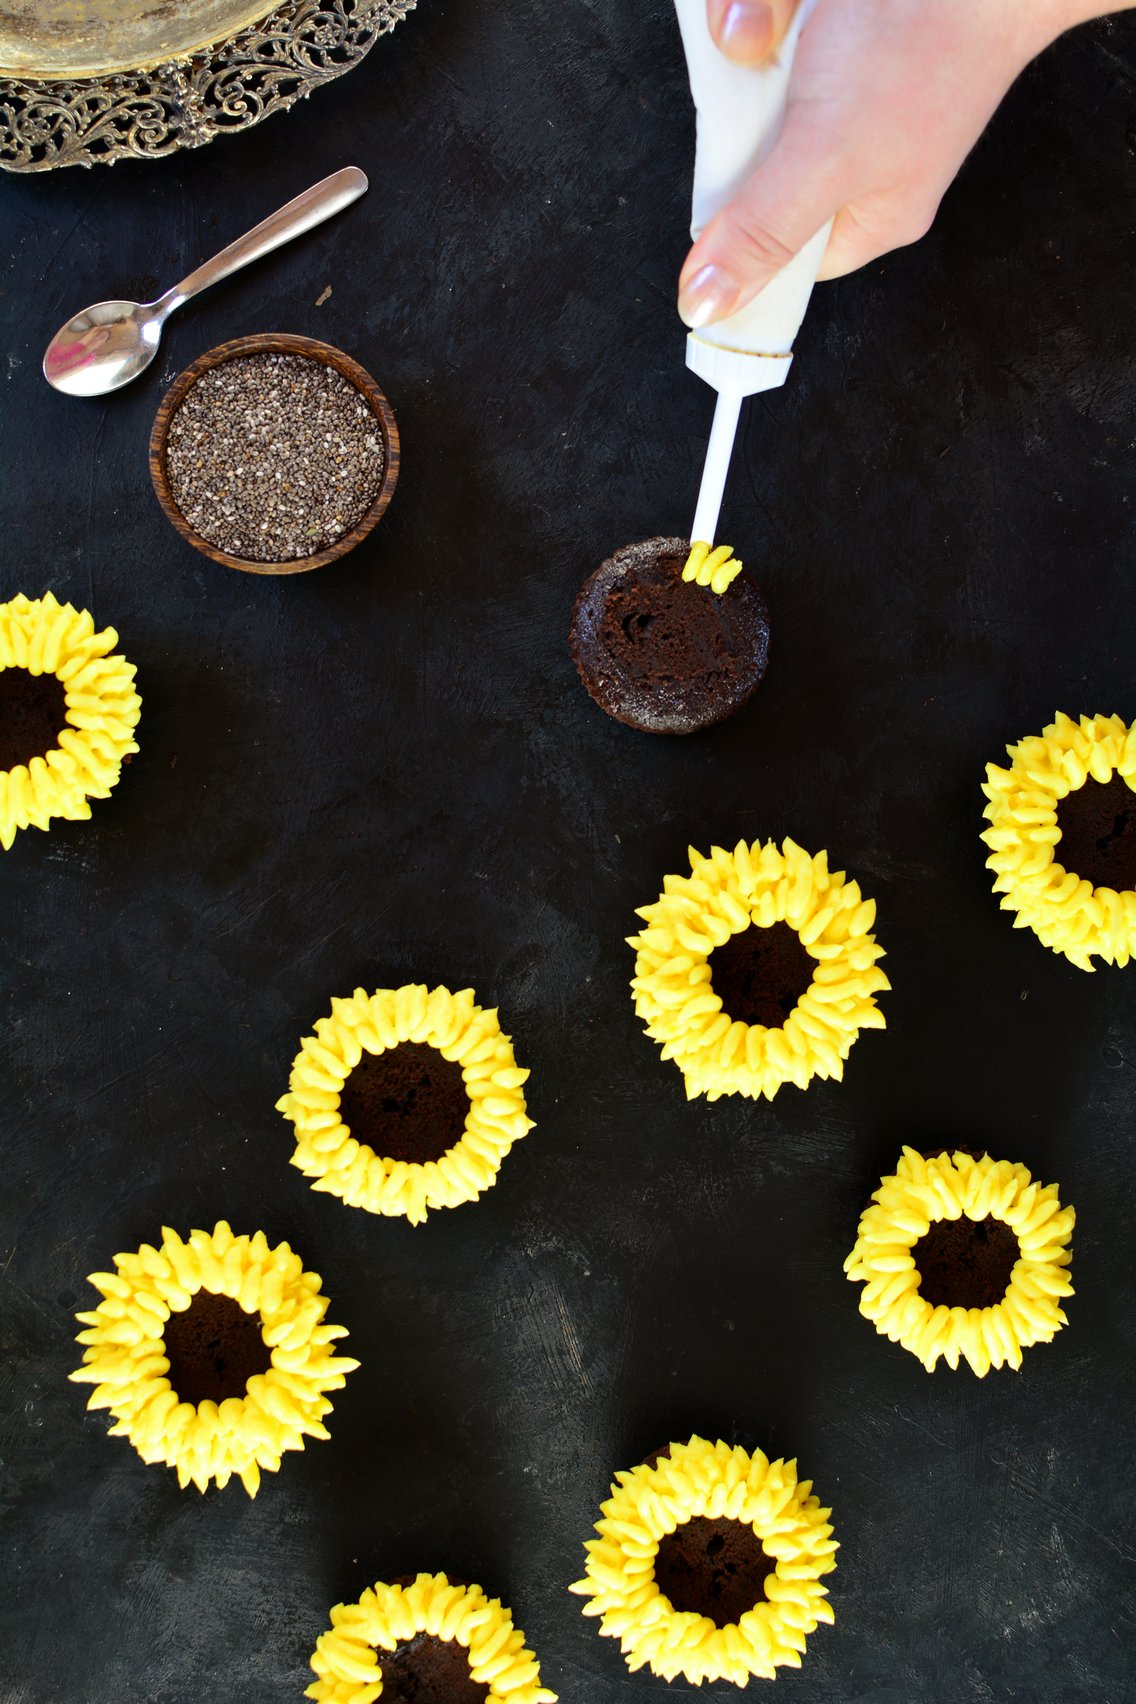 Sunflower Maca Cupcakes - Preparation